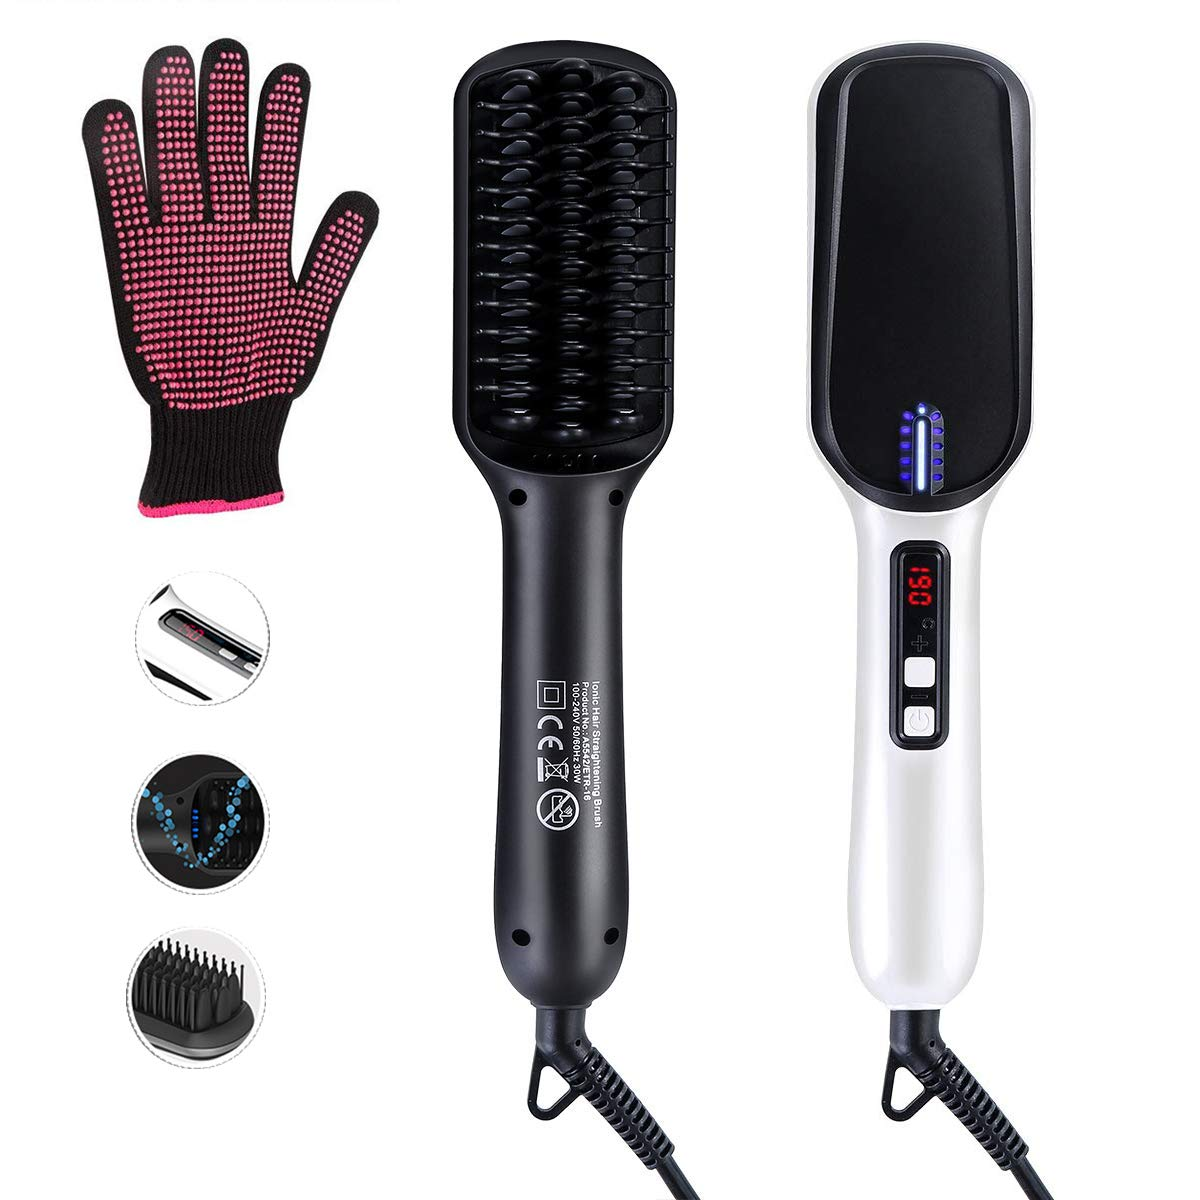 Beard Straightener Hair Straightener Brush -VIPpro Hair Straightening Comb,Auto Temperature Lock,Negative ions Anti,Professional Hair Straightening Brush for Women and Men, For Home and Travel Price: $35.99